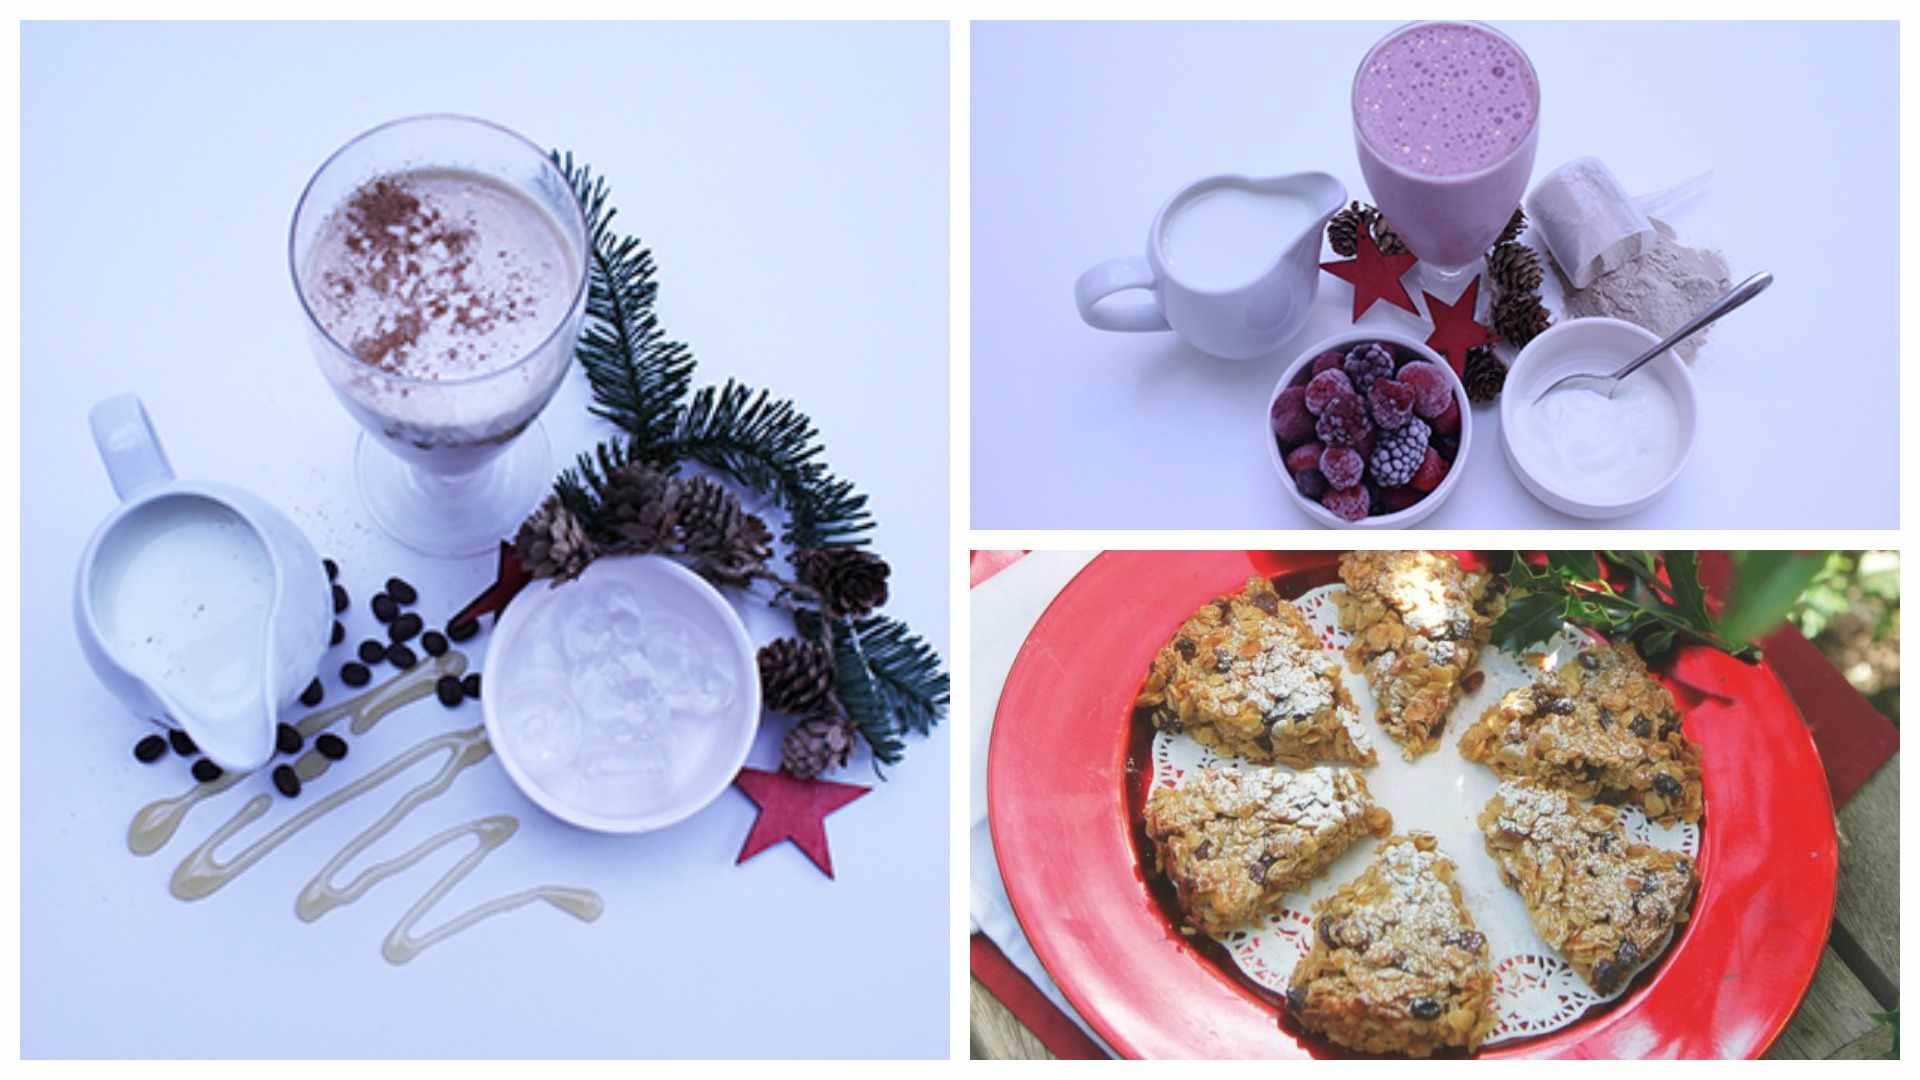 Festive smoothies to get you in the mood for Christmas